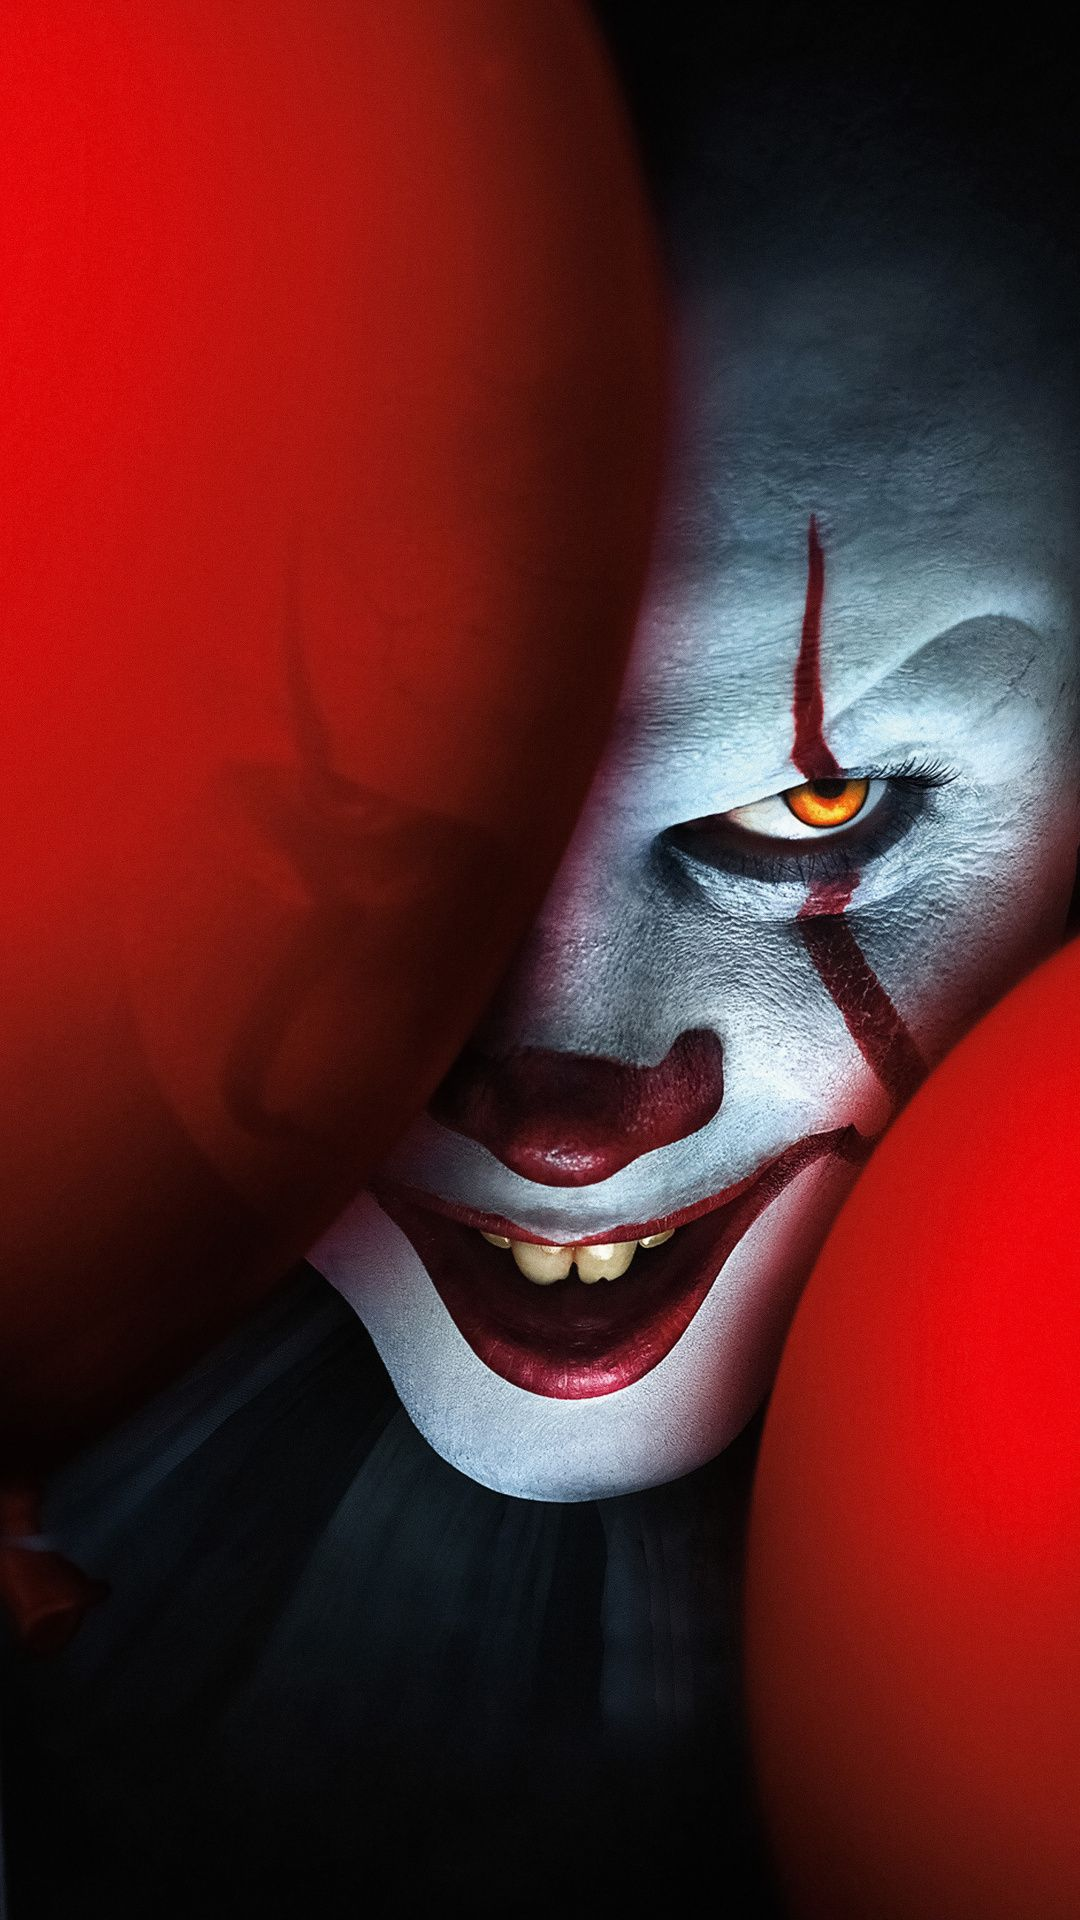 1080x1920 It Chapter Two Clown Pennywise 2019 Movie Wallpaper Joker Hd Wallpaper Pennywise The Clown Creepy Faces